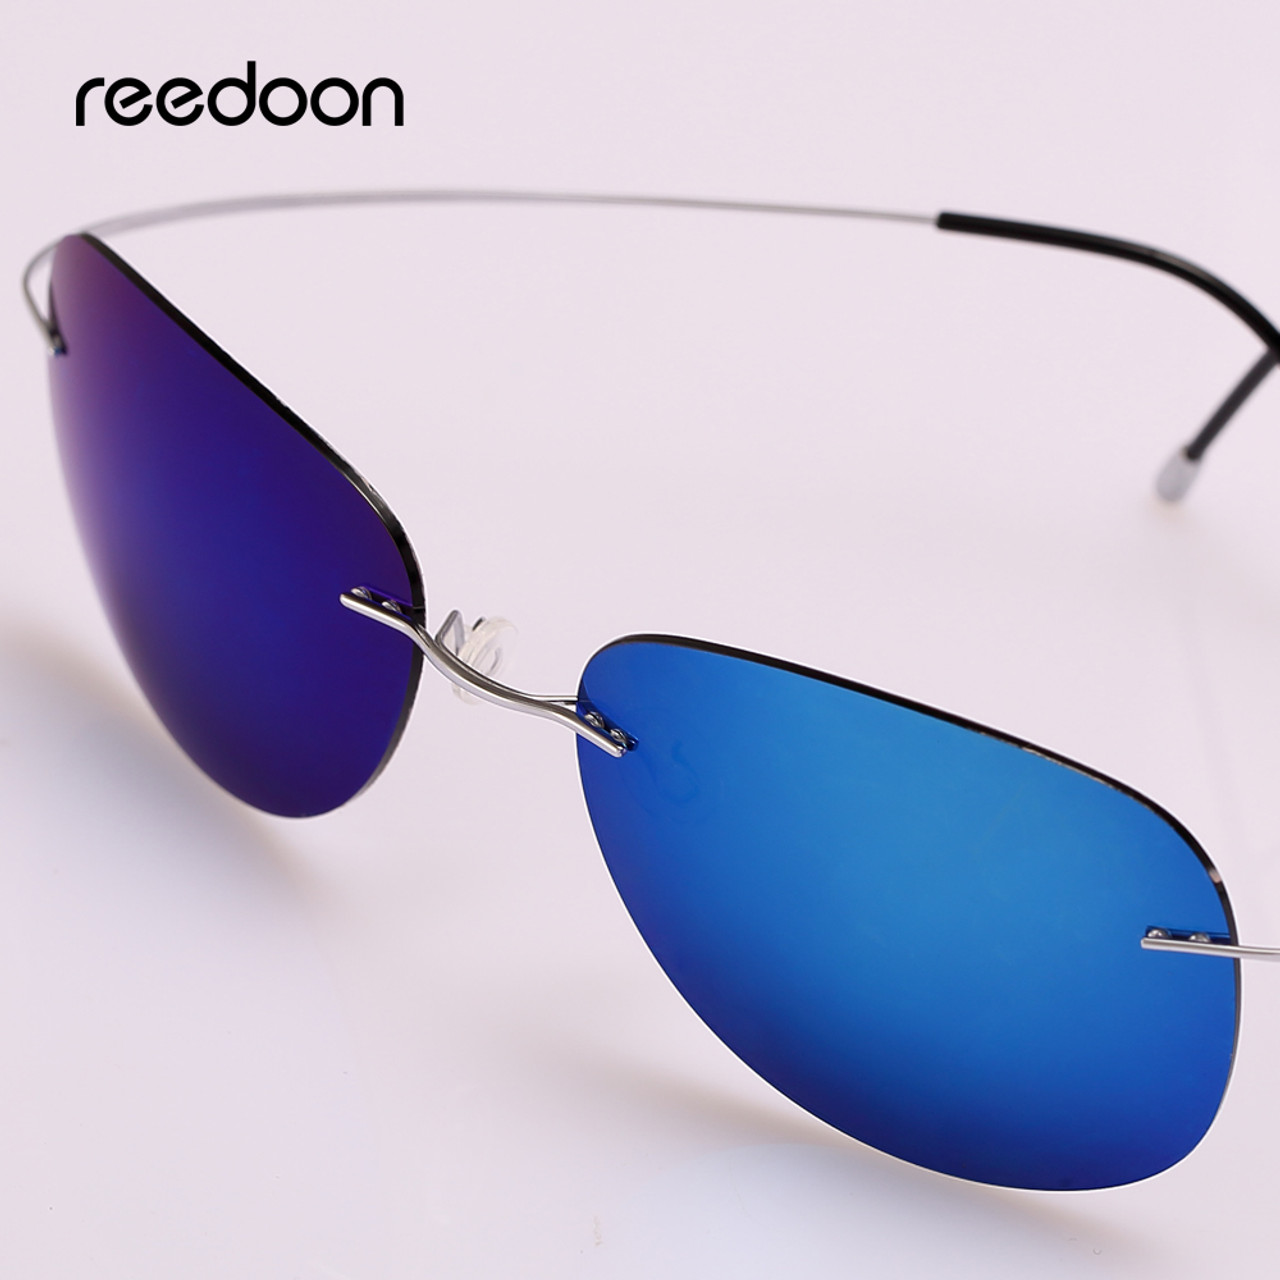 05f539fa55b Reedoon Sunglasses Polarized Mirrored UV400 Lens 90% Titanium Frame  Lightweight Sun Glasses 2018 For Men ...